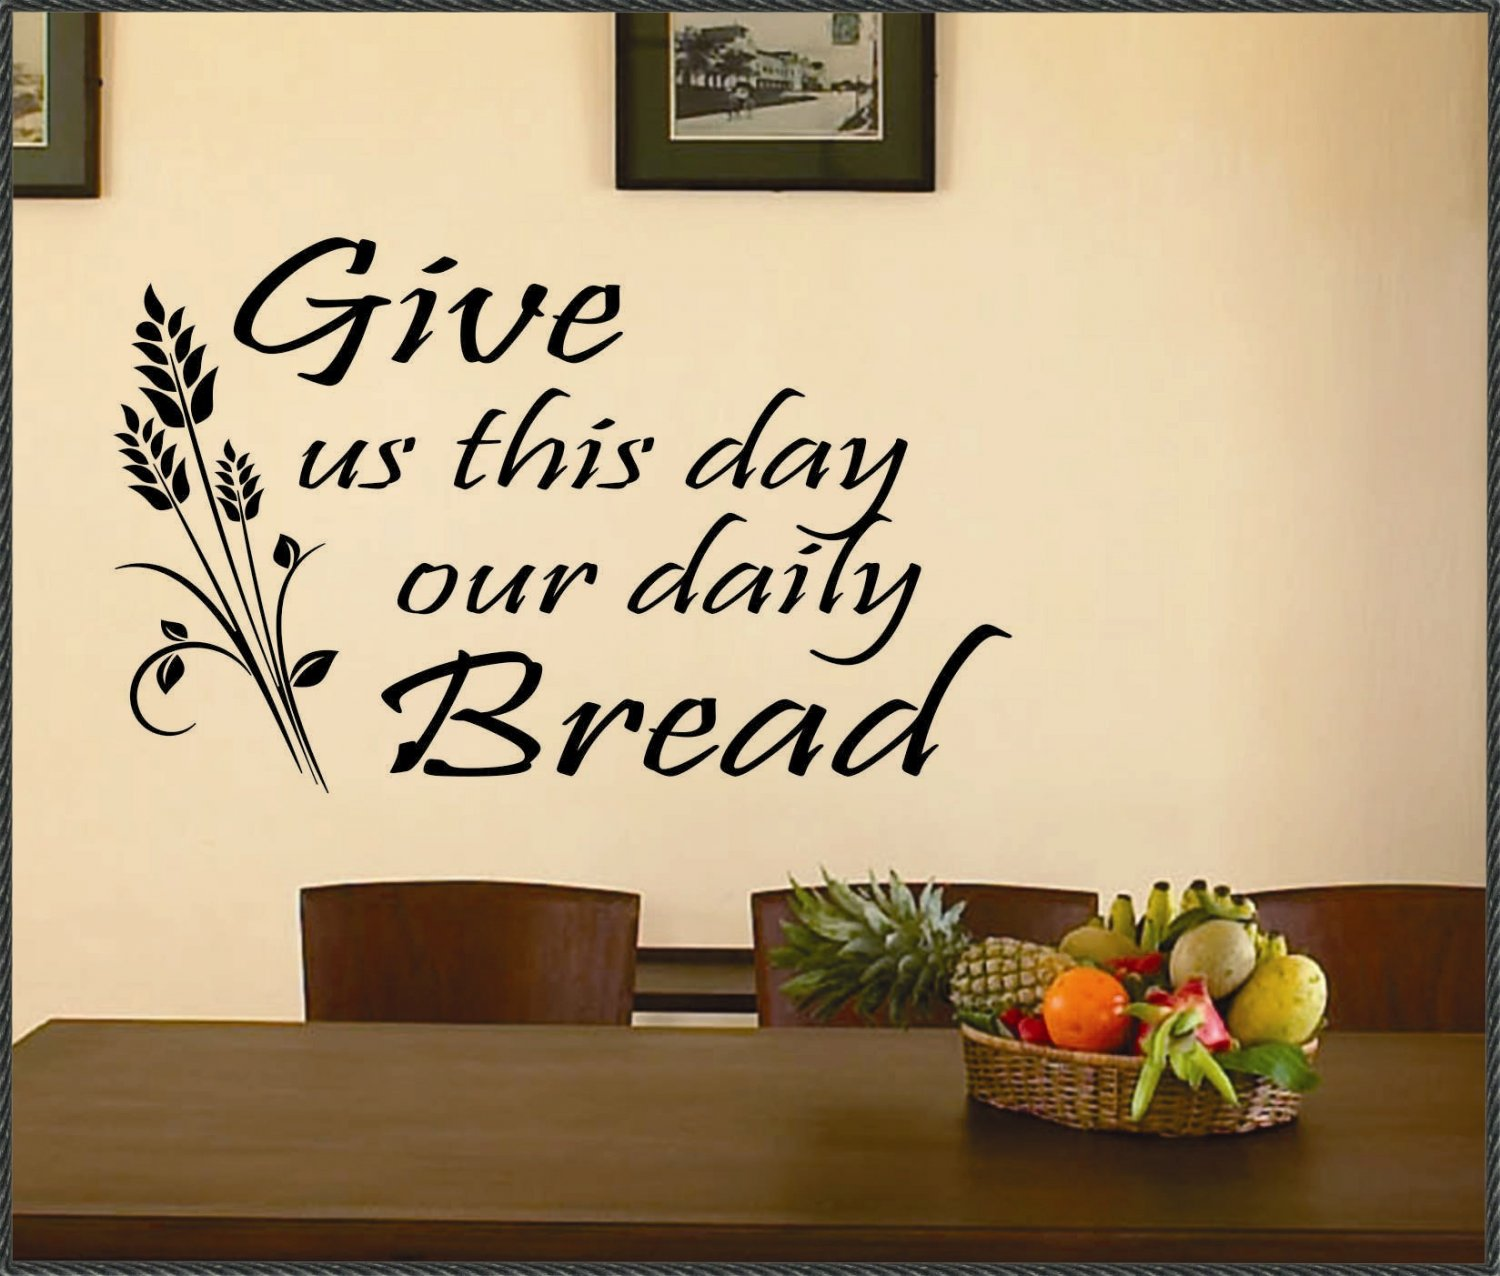 Daily bread quotes quotesgram for Christian wall mural